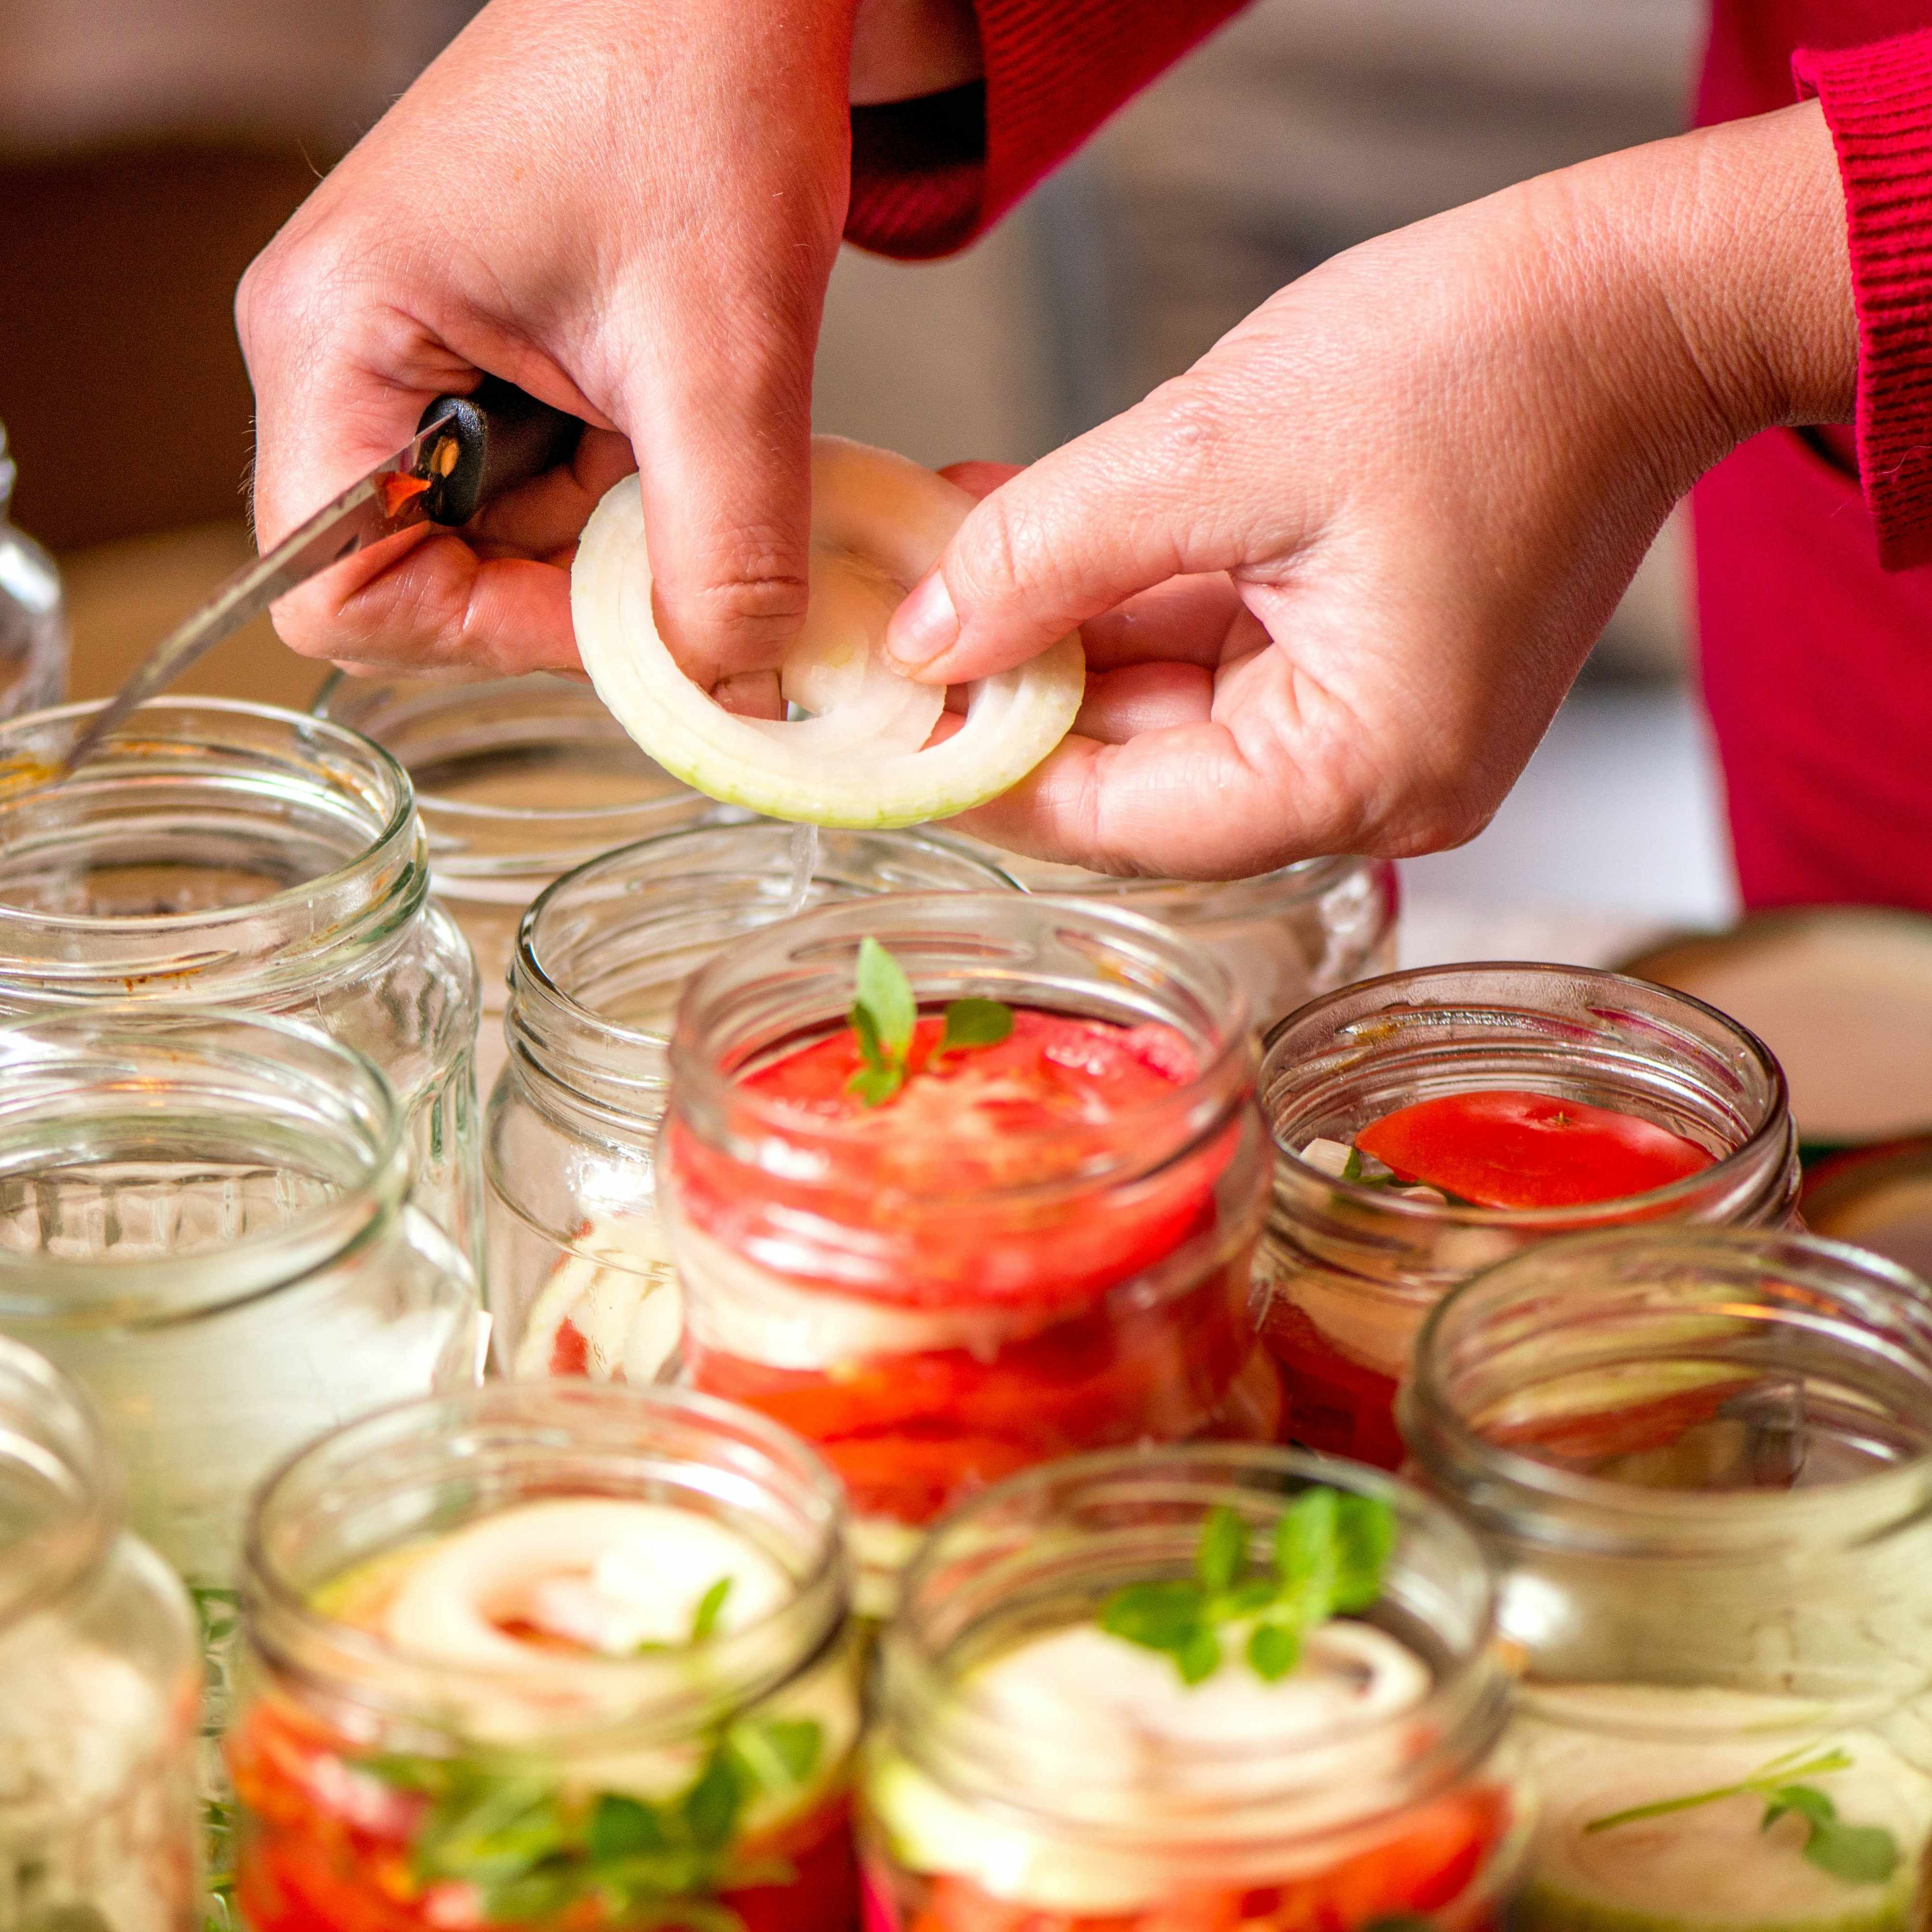 a person canning vegetables in jars